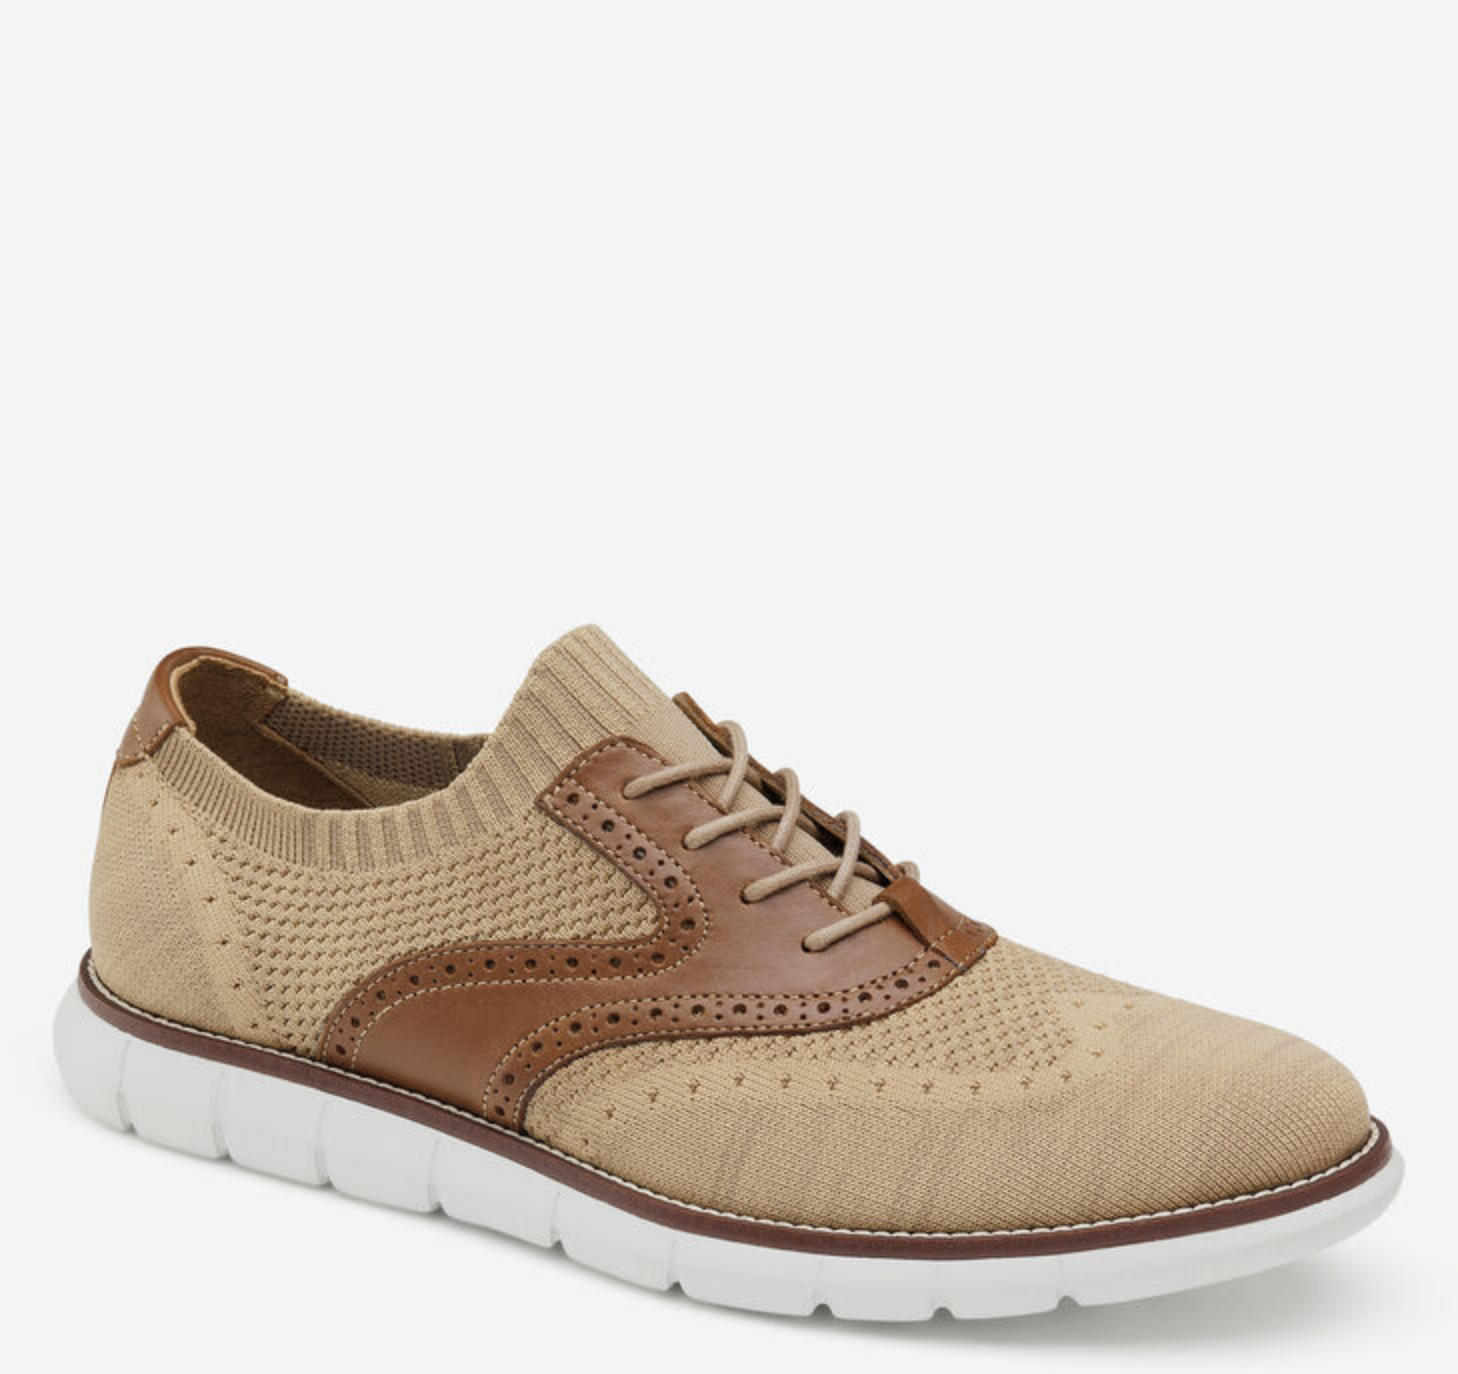 Johnston and Murphy Holden Knit Wingtip